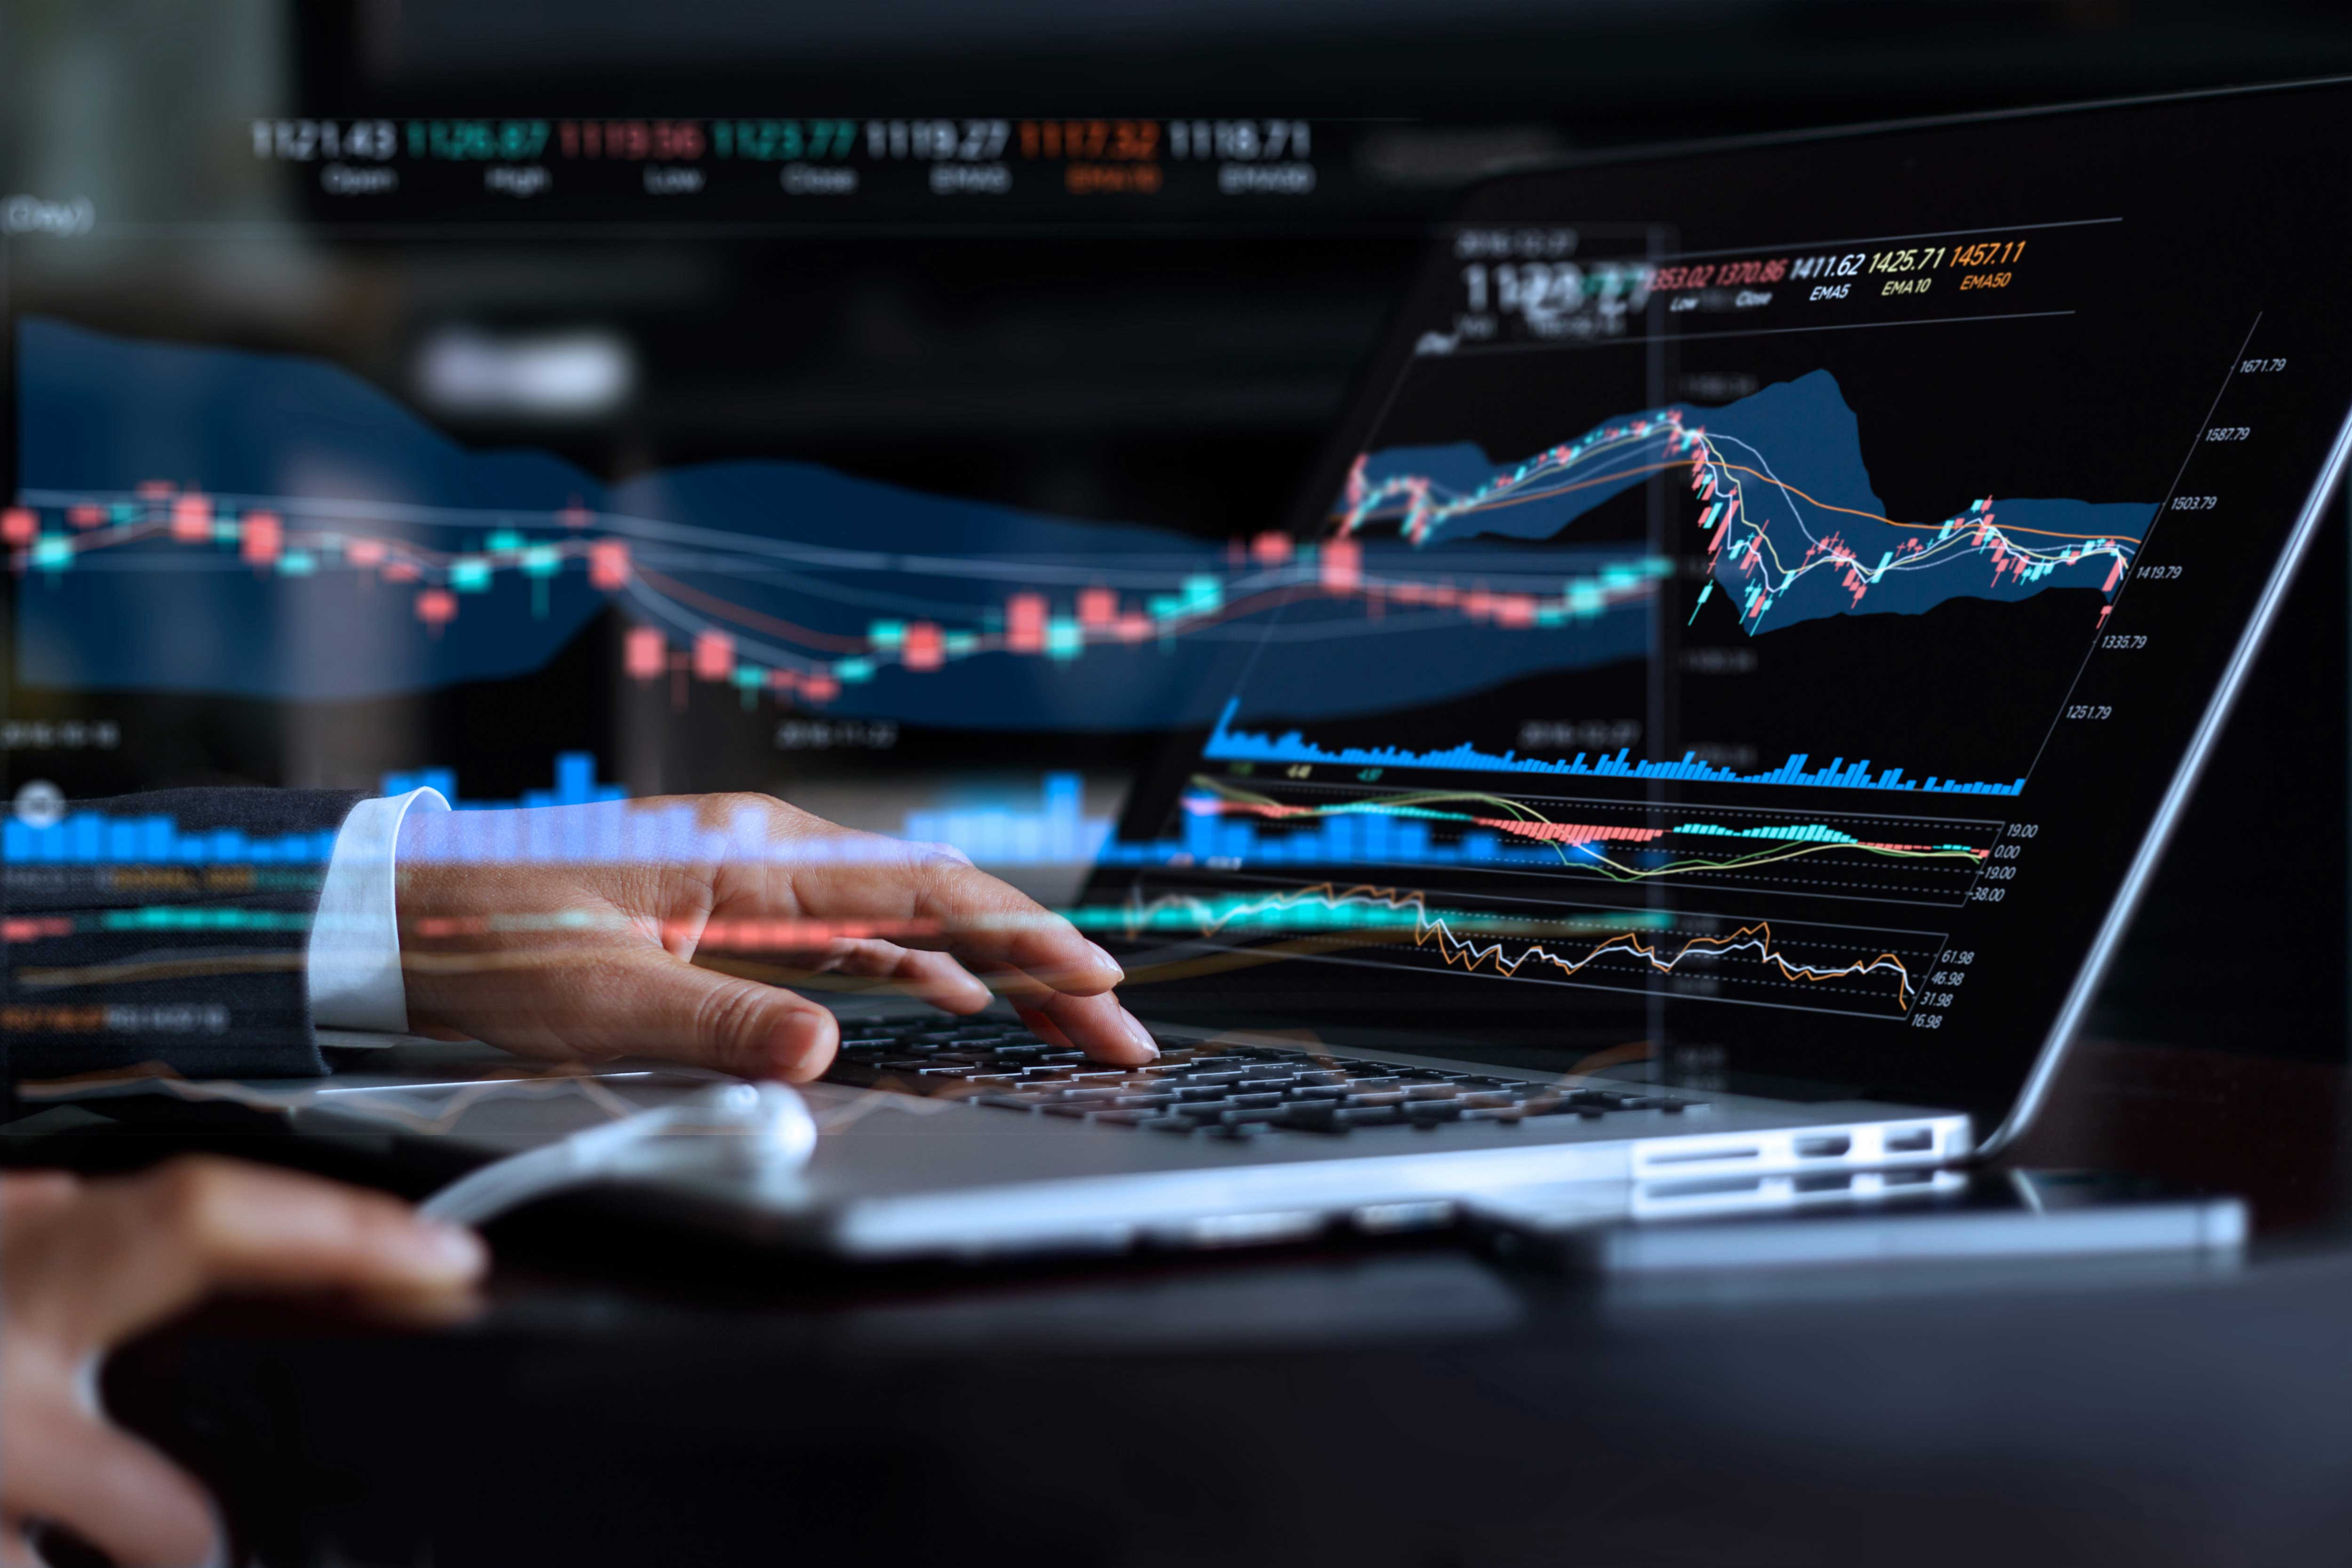 Businessman using laptop to view stock market graph